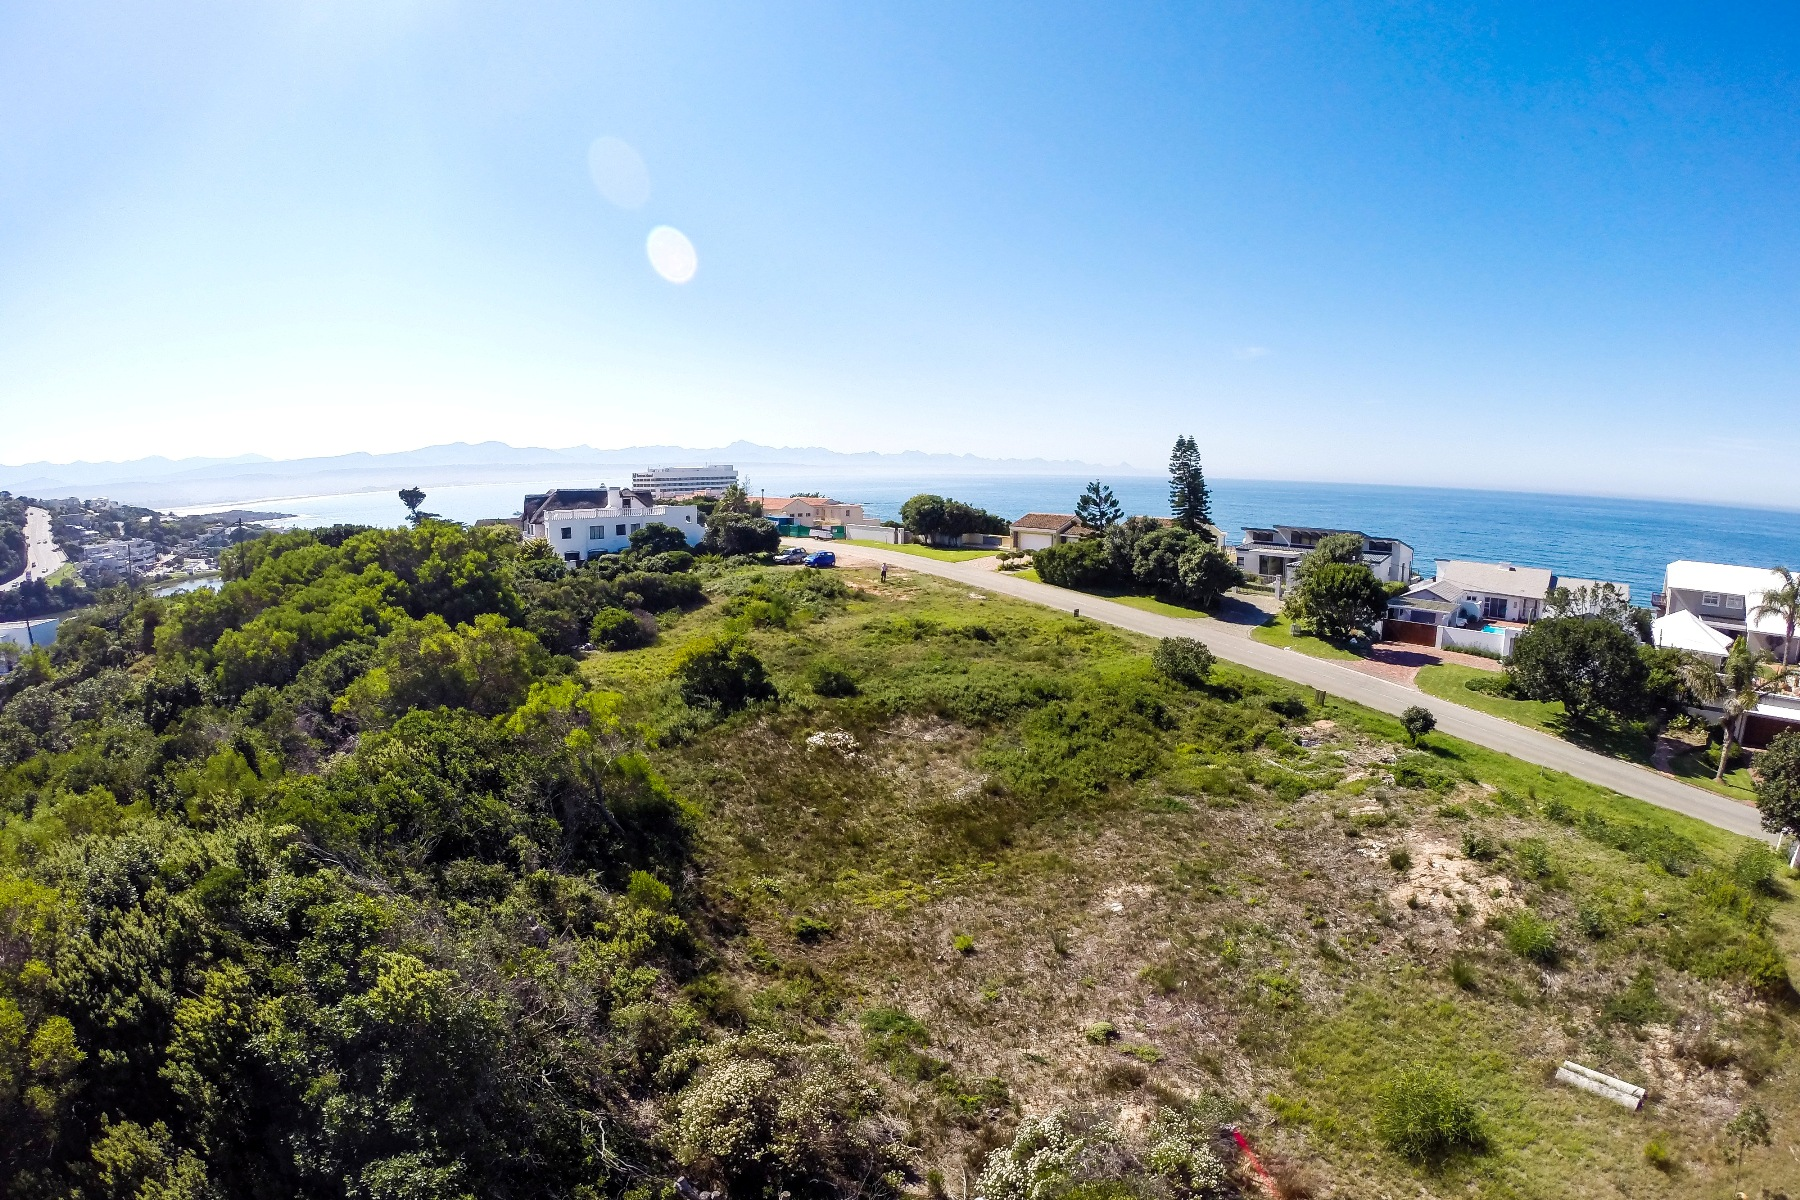 Land for Sale at The Right Address: Beachy Head Dr! Plettenberg Bay, Western Cape, 6600 South Africa